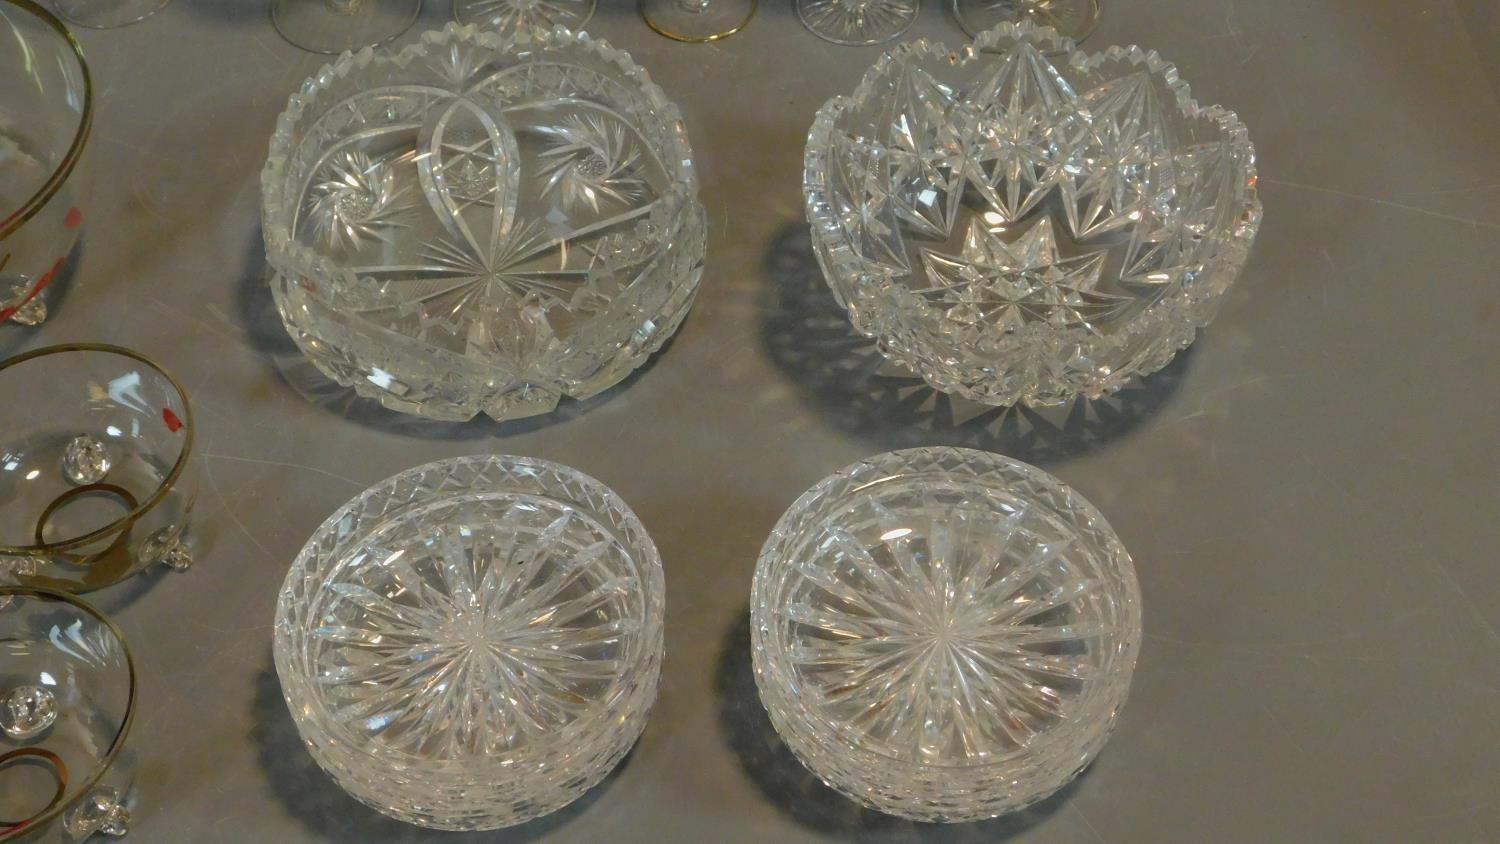 A vintage painted decorated dessert set and a collection of miscellaneous glass items. - Image 4 of 7